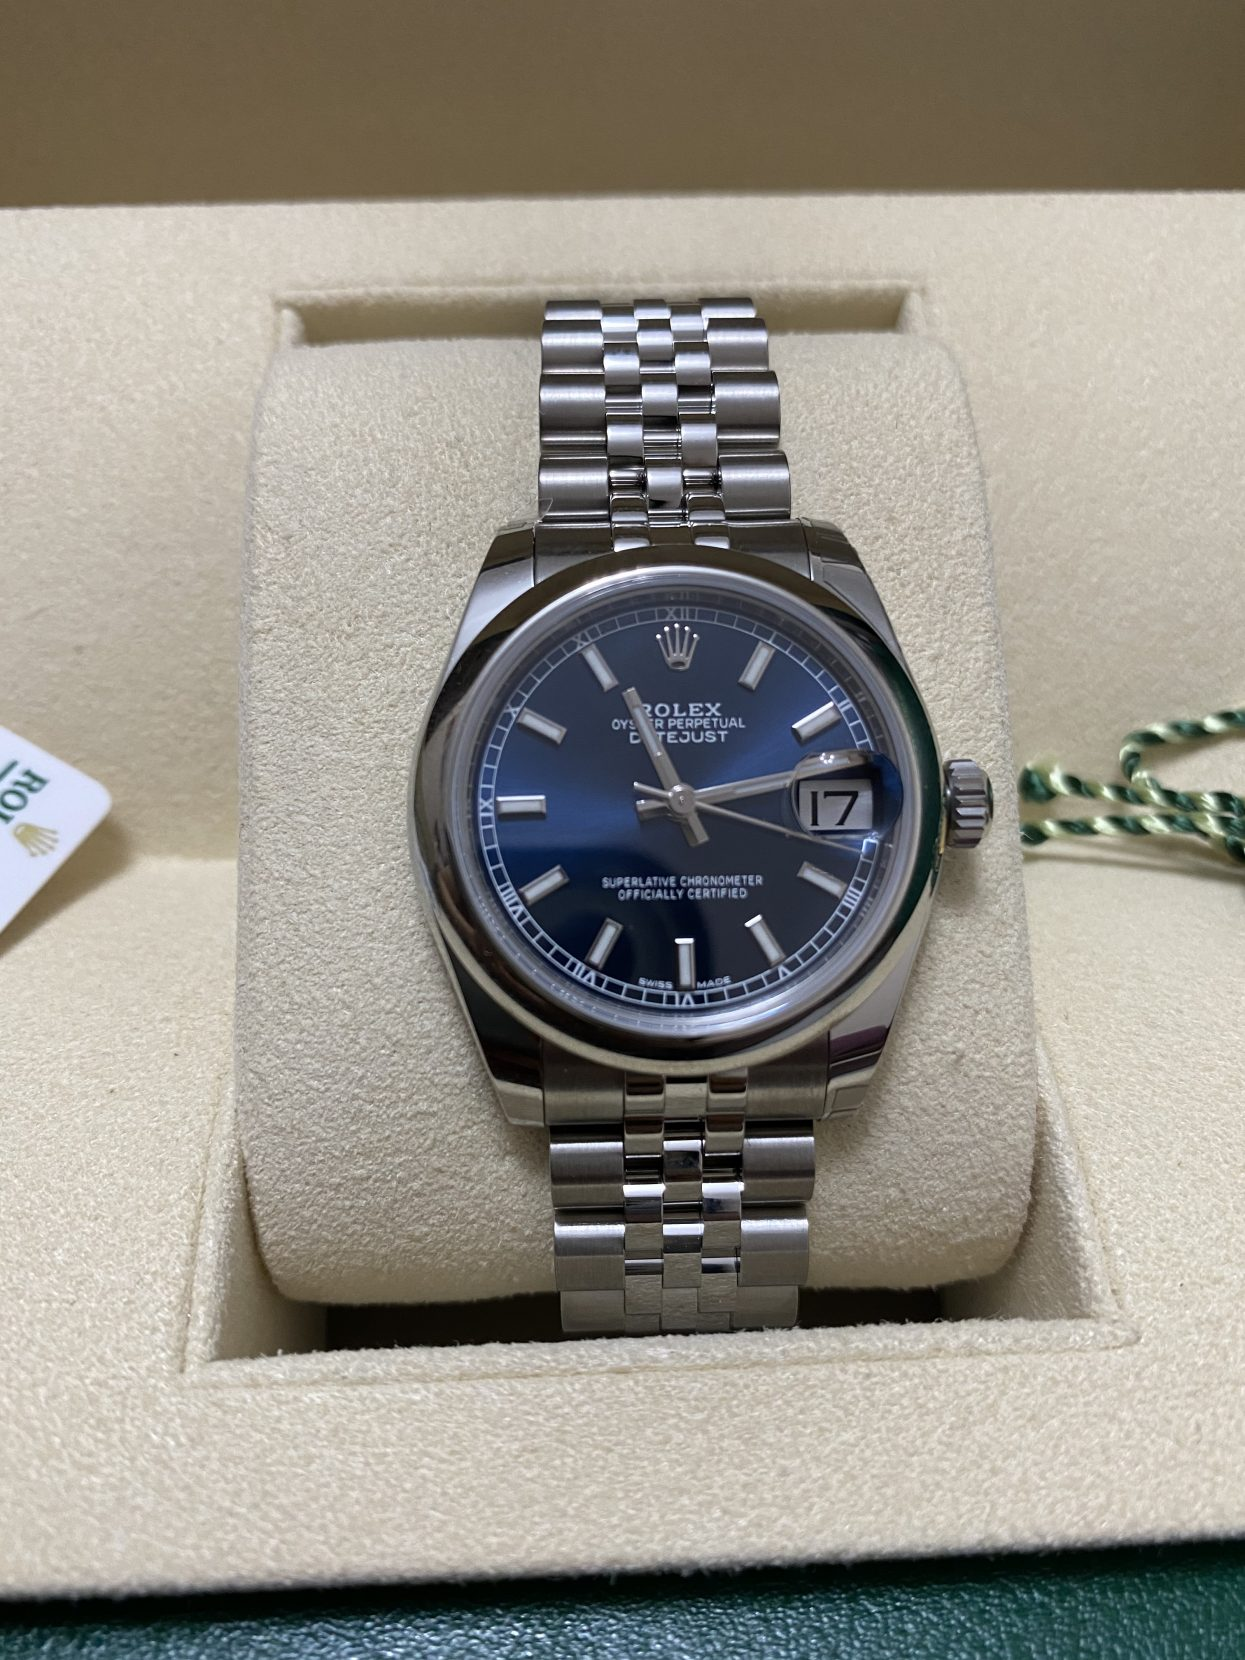 Rolex watch Datejust 2019